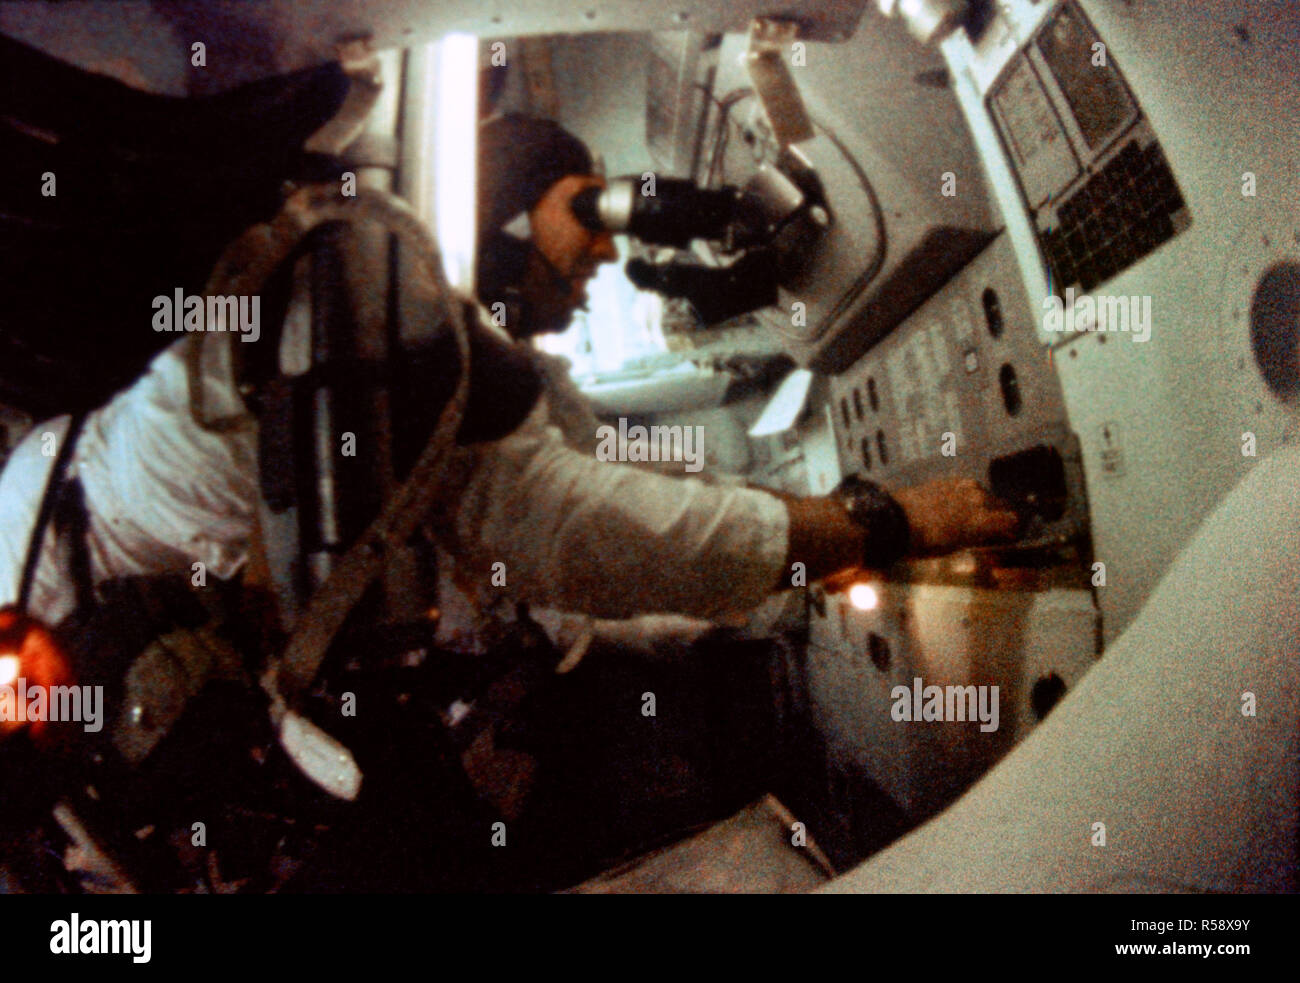 Apollo Guidance Stock Photos Images Alamy The Computer 1968 Astronaut James A Lovell